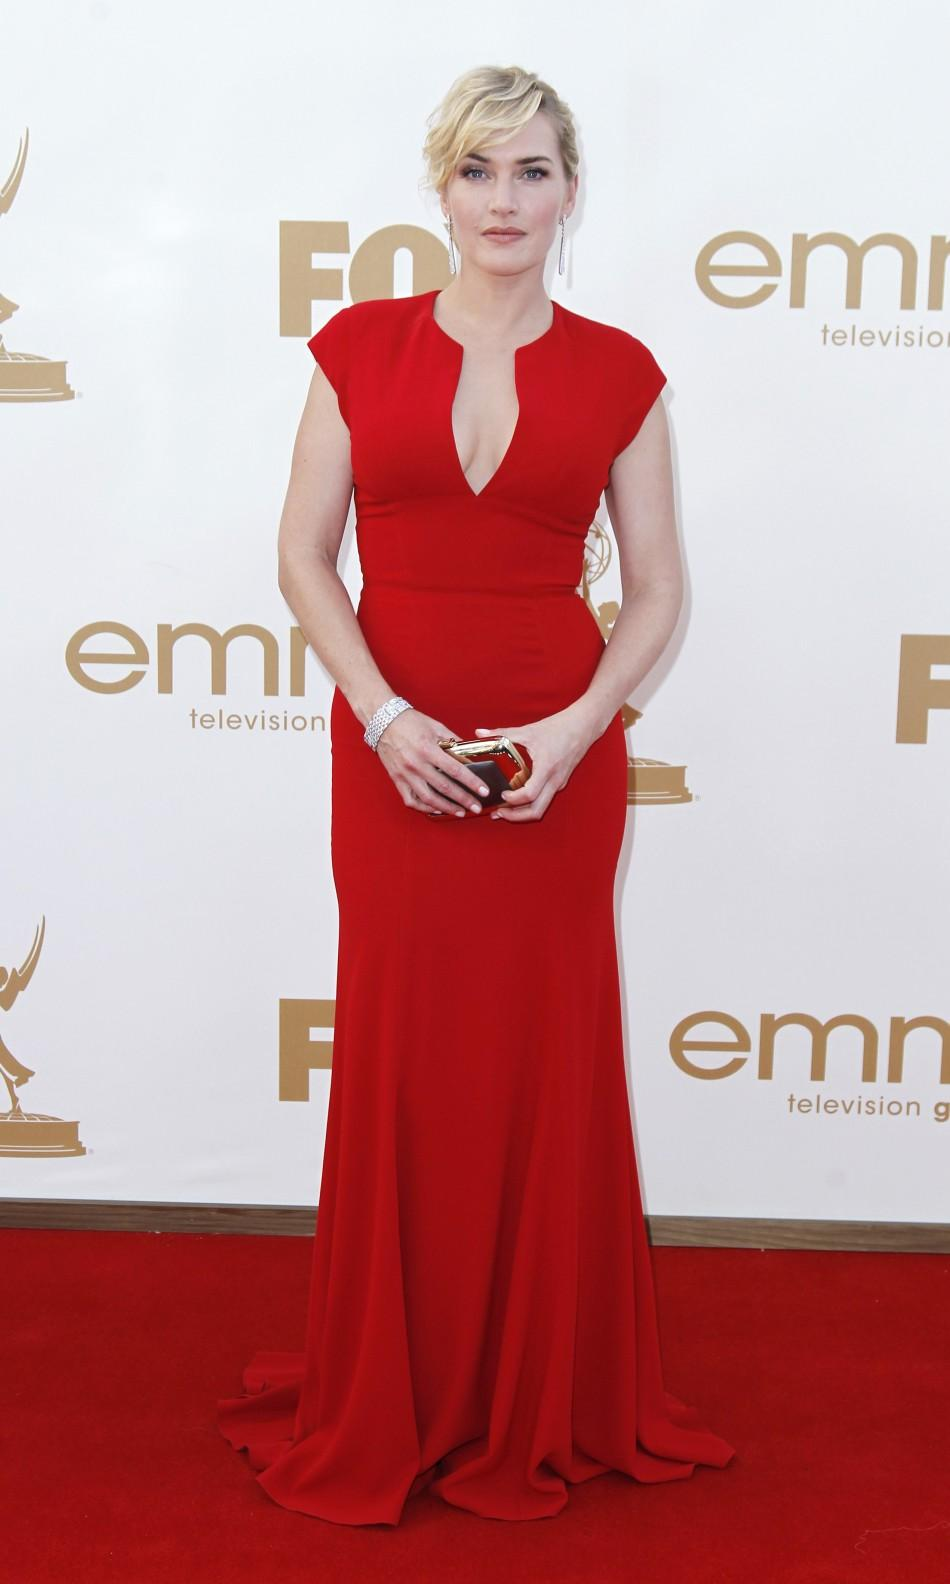 Kate Winslet arrives at the 63rd Primetime Emmy Awards